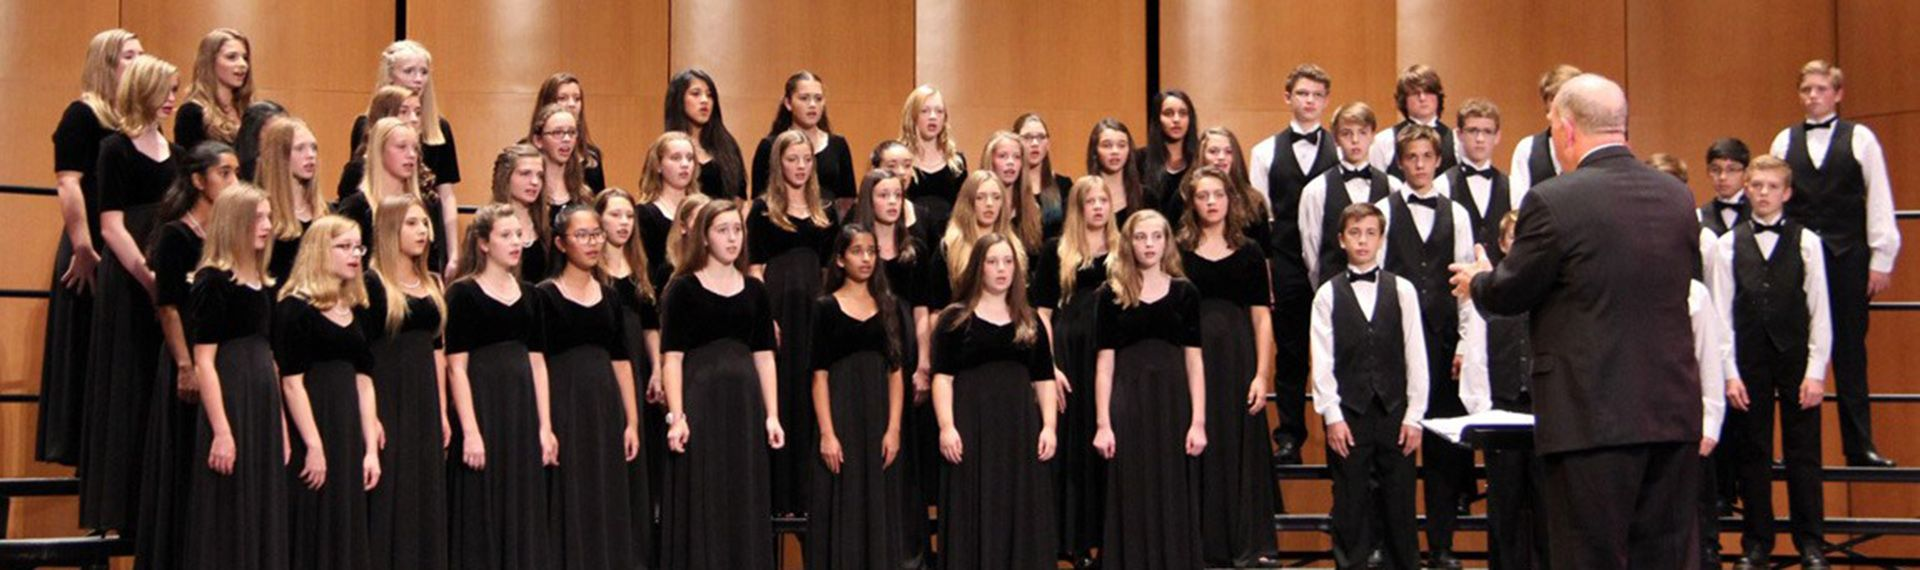 Upper School students perform at choir concert.